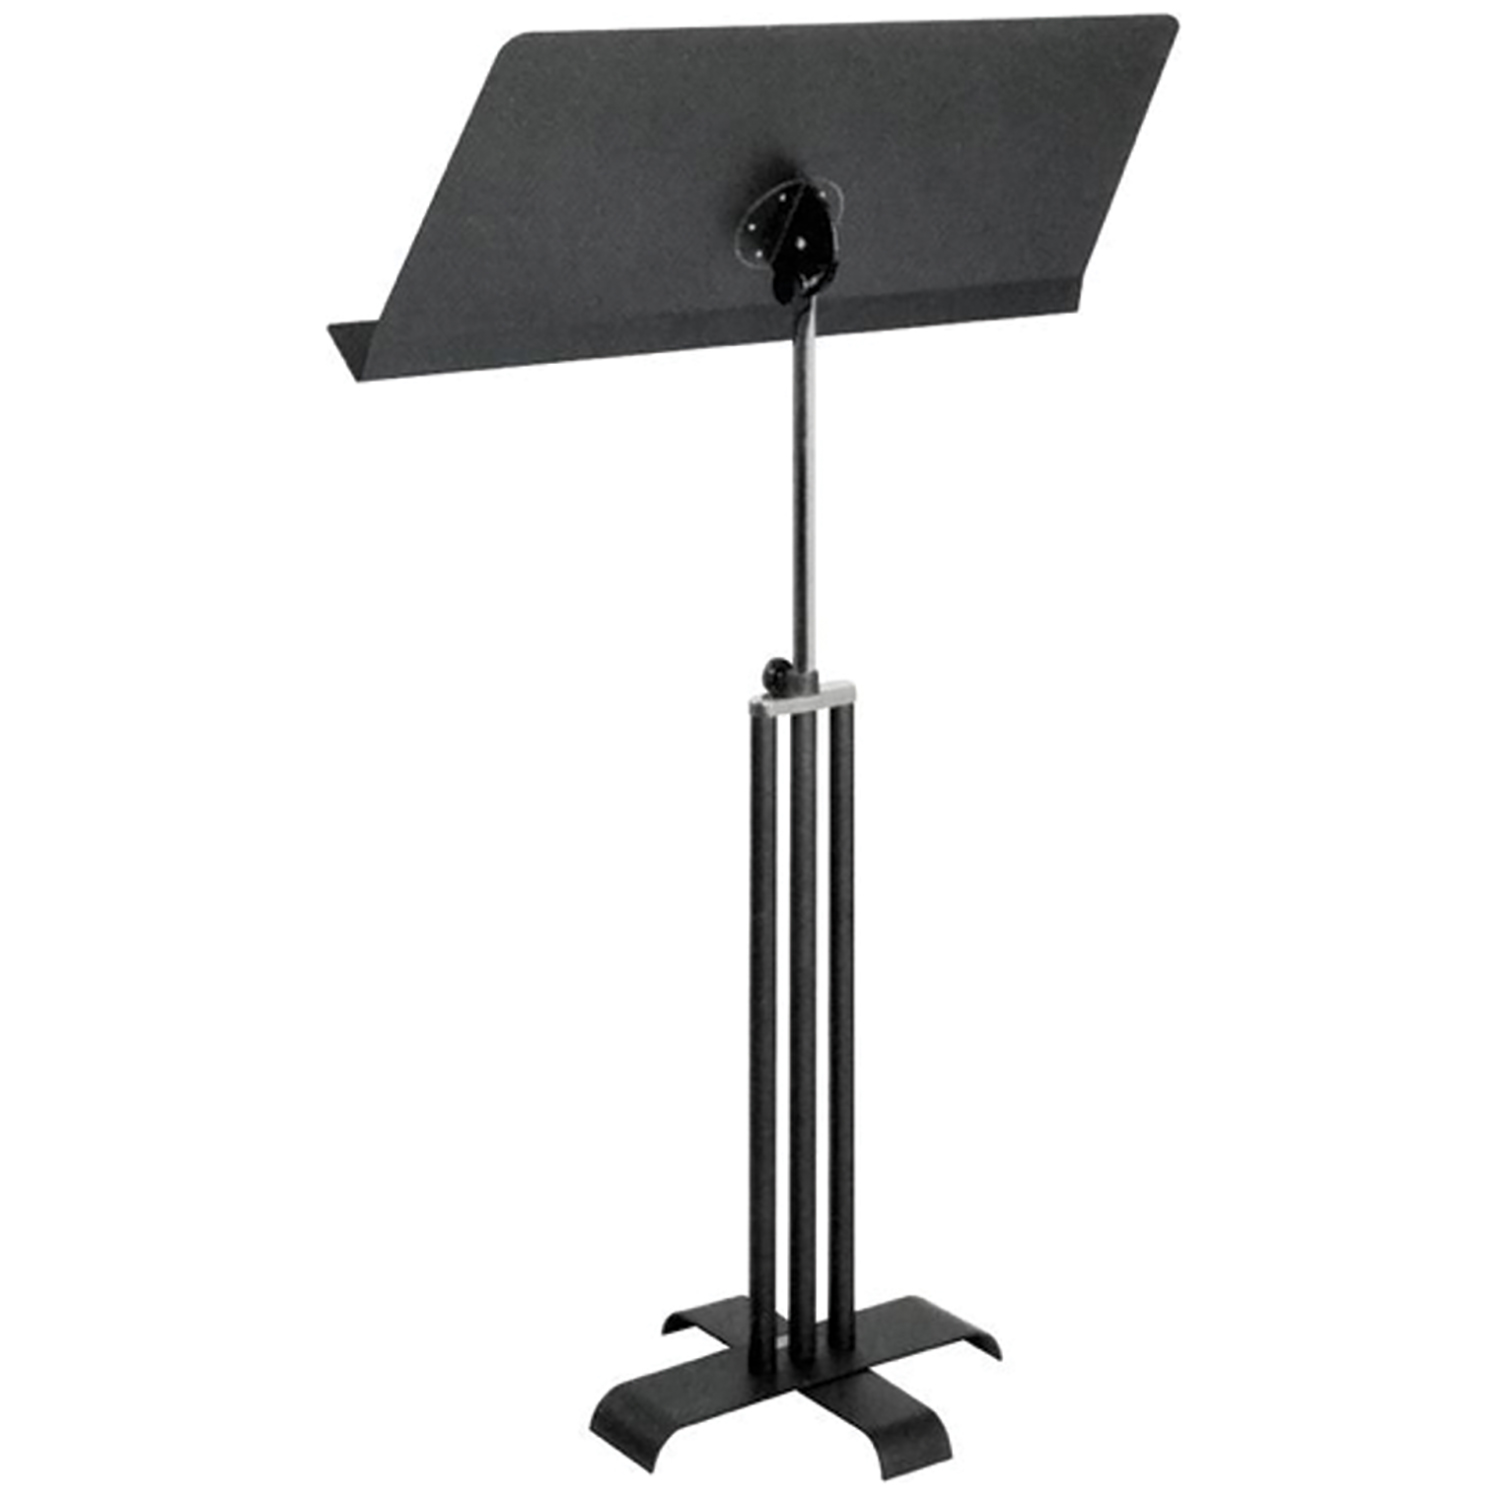 "Hamilton ""The Maestro"" Conductor's Symphonic Stand by Hamilton Stands"